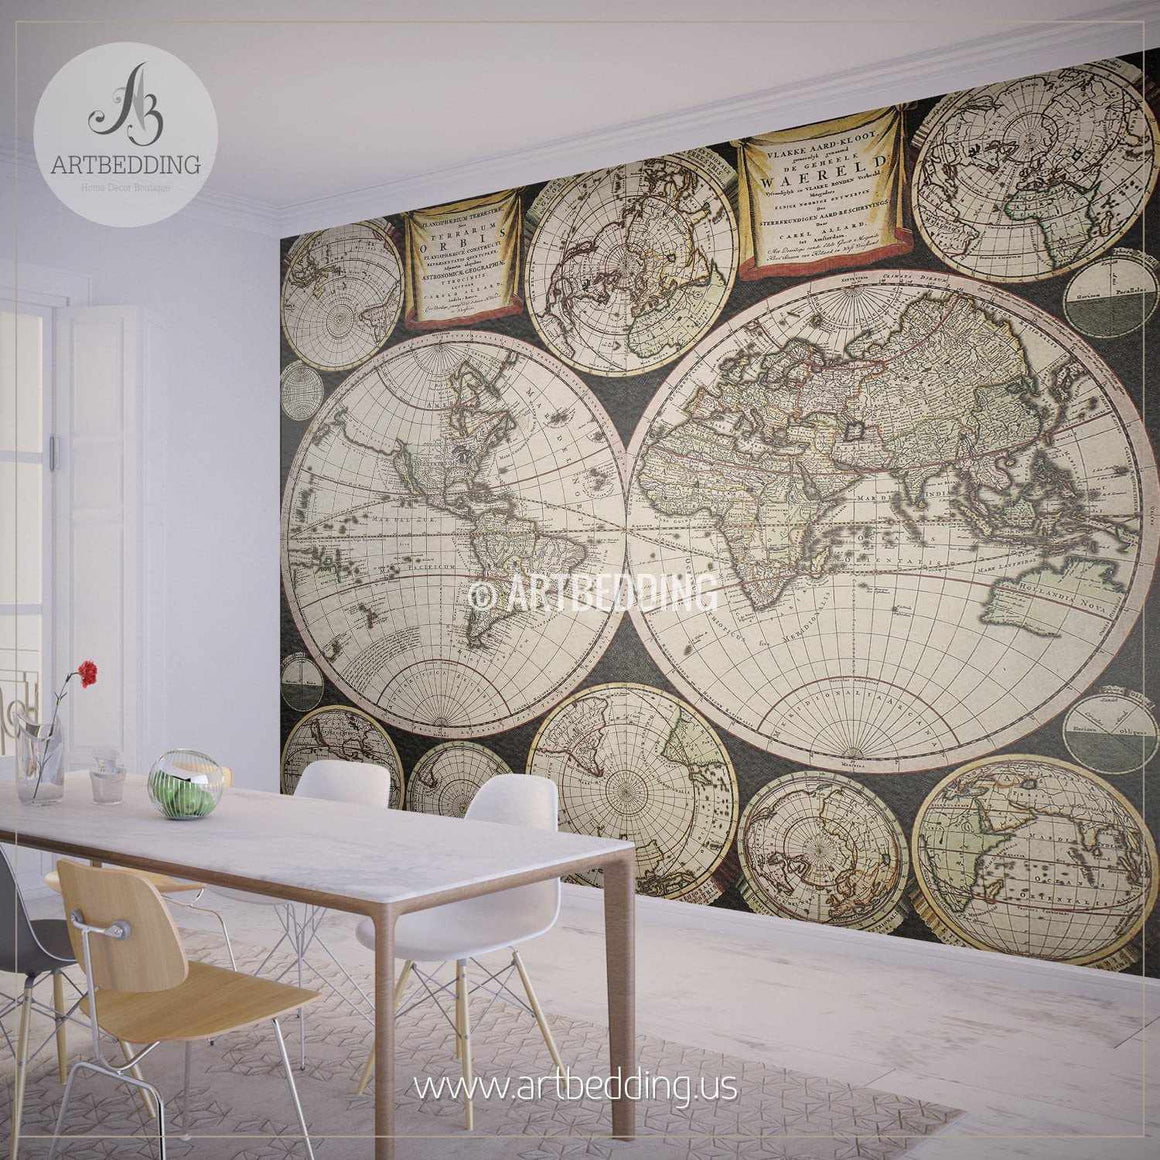 Old Double Hemisphere World Map from 1696 Wall Mural, Self Adhesive Peel & Stick Photo Mural, Atlas wall mural, mural home decor wall mural